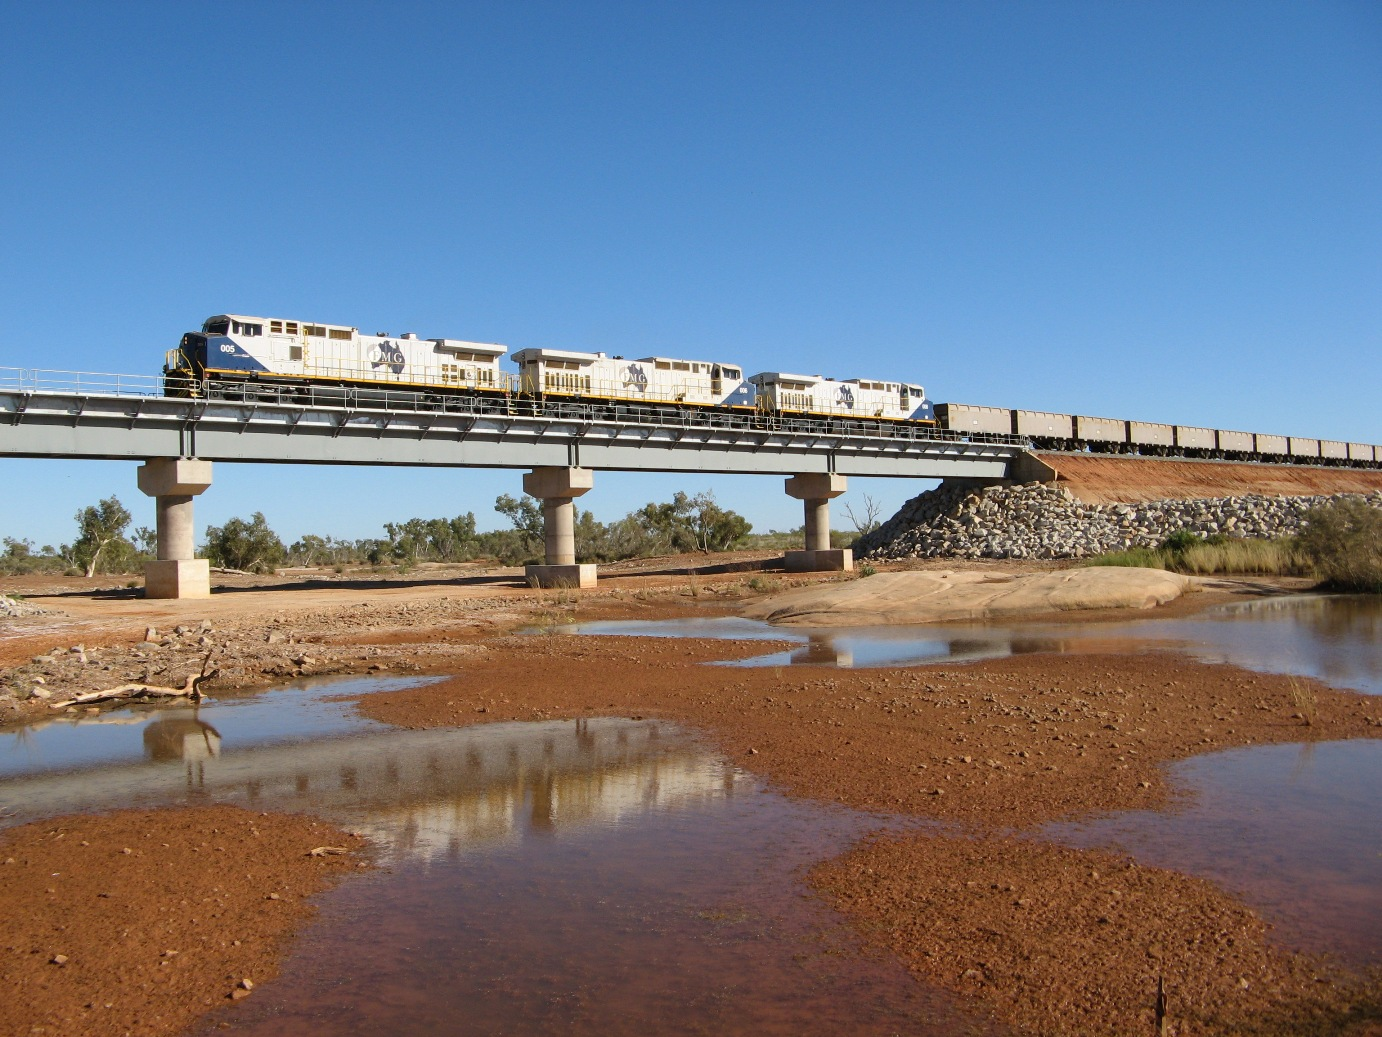 Fortescue railway - Wikipedia